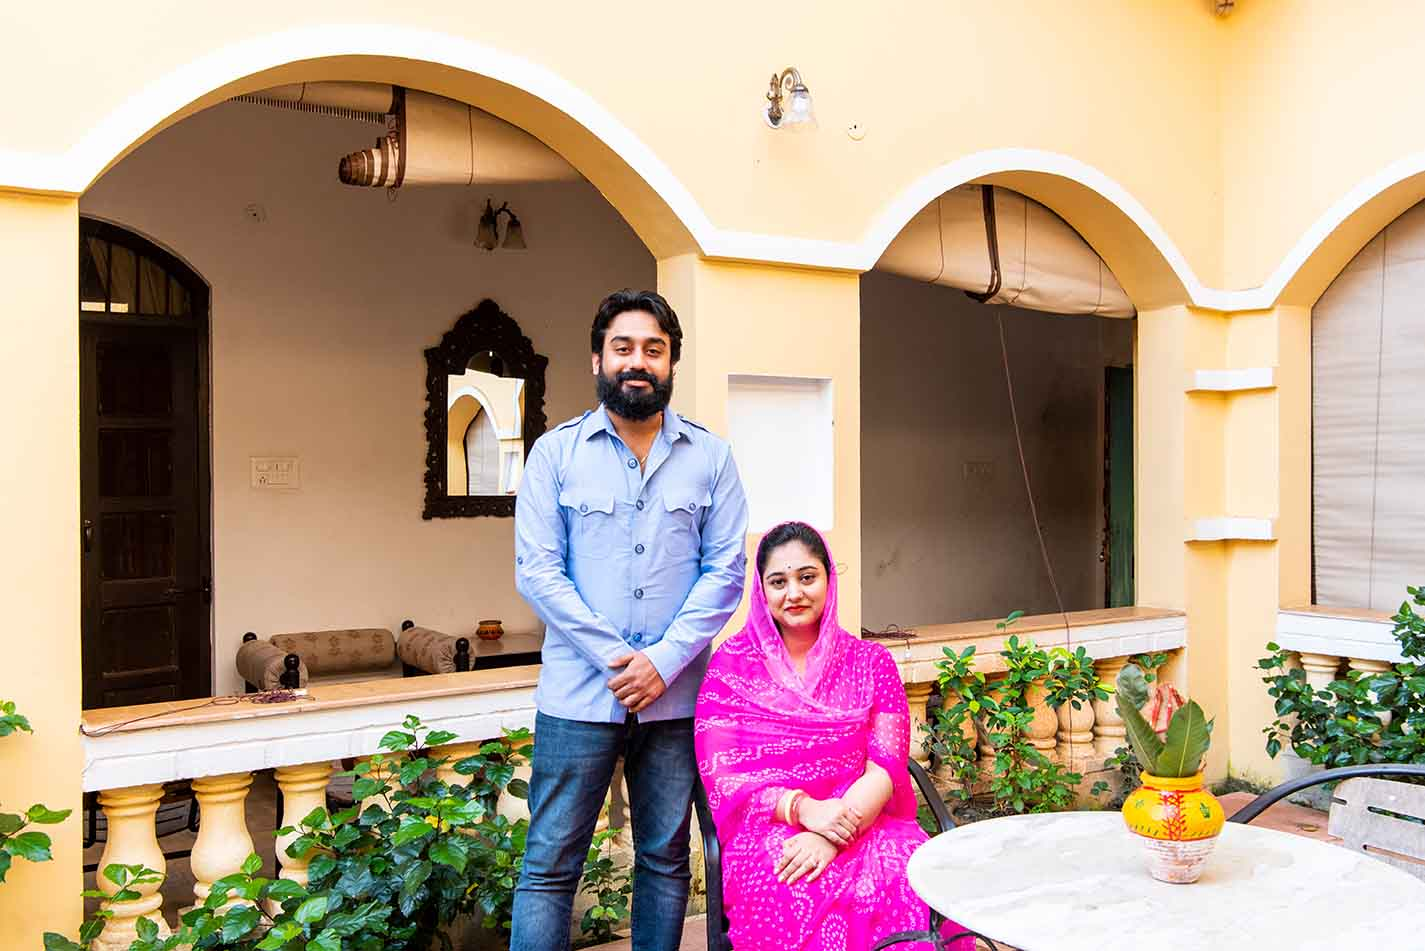 The Singh family are perfect hosts and make your stay memorable